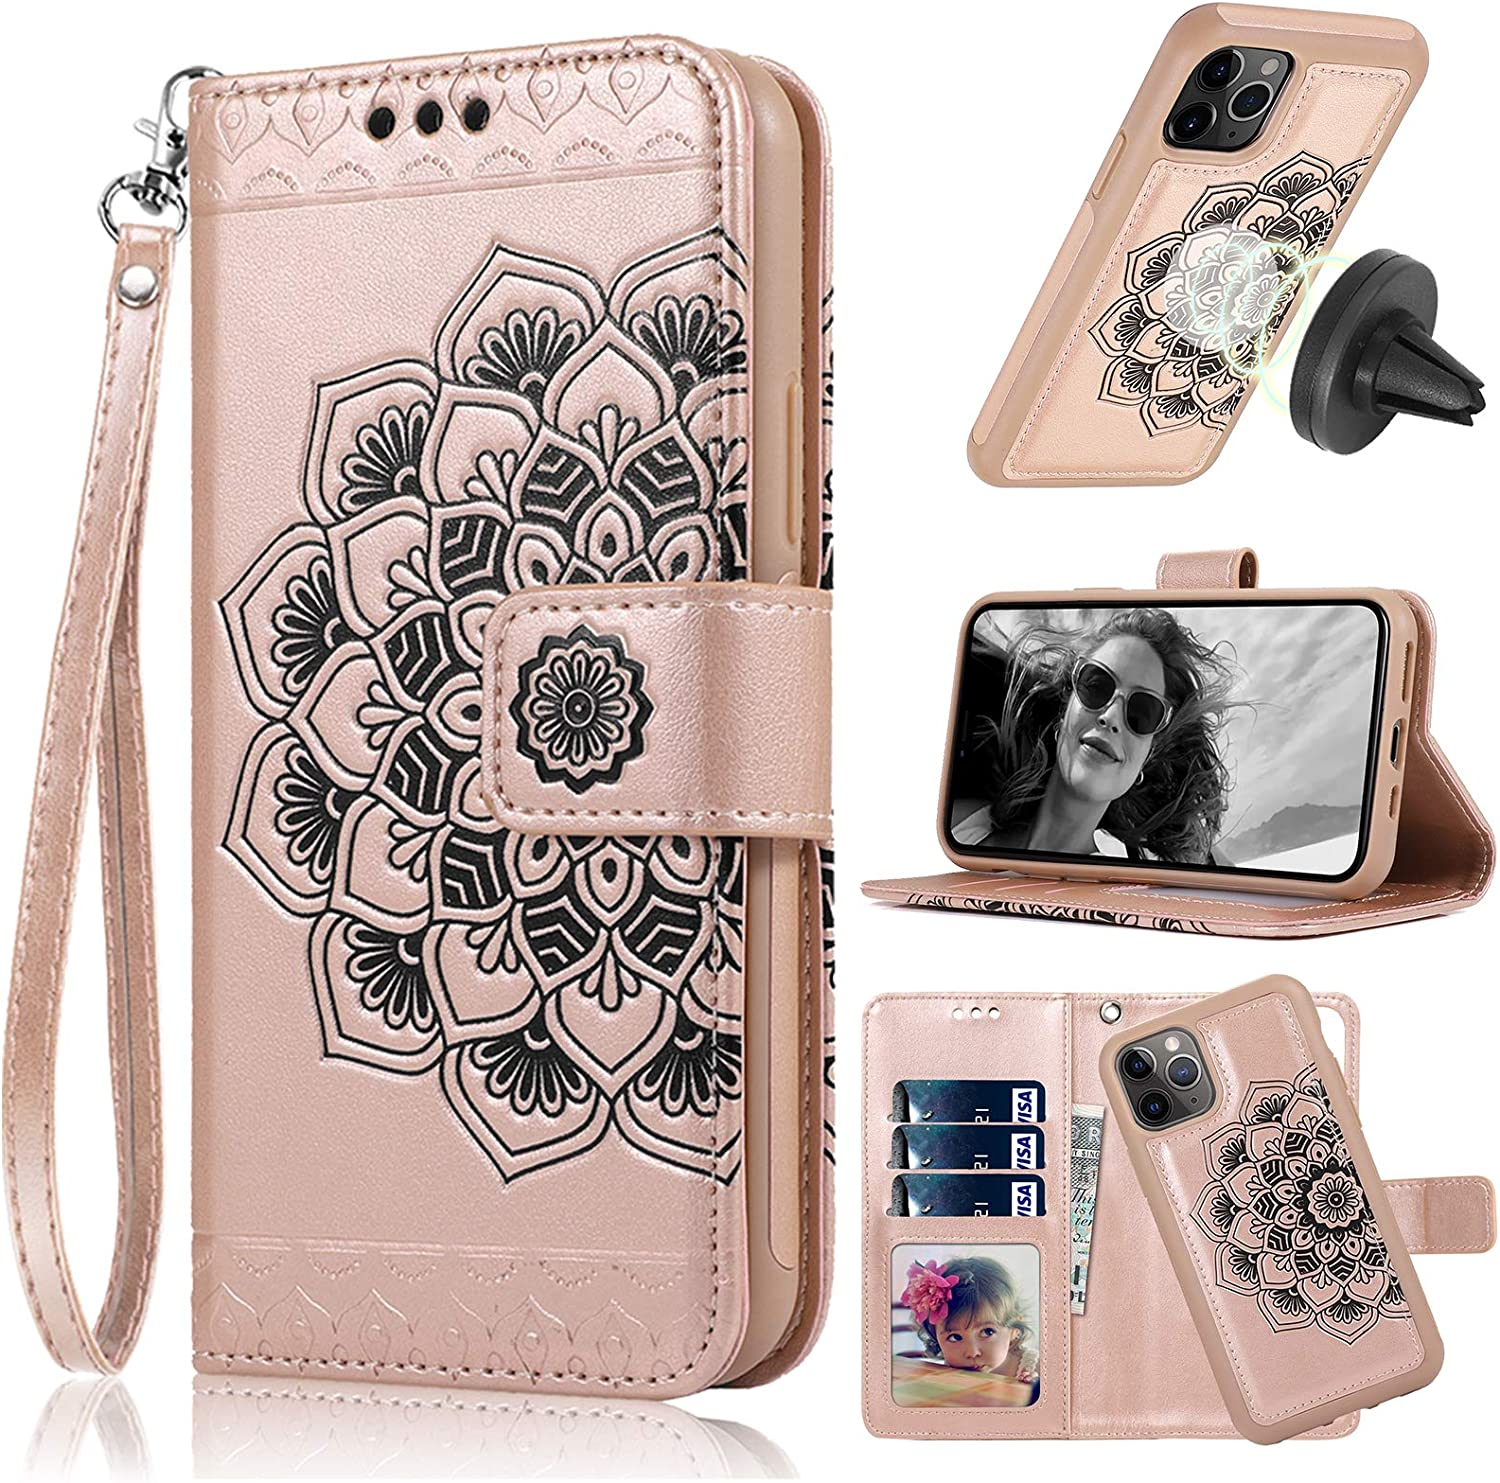 CASEOWL iPhone 11 Pro Max Case Wallet with Magnetic Detachable Slim Case Fit Car Mount,Card Holder,Kick Stand,RFID Protection,Strap,Mandala Embossed Leather Wallet Case for iPhone 11 Pro Max,Rose Gold